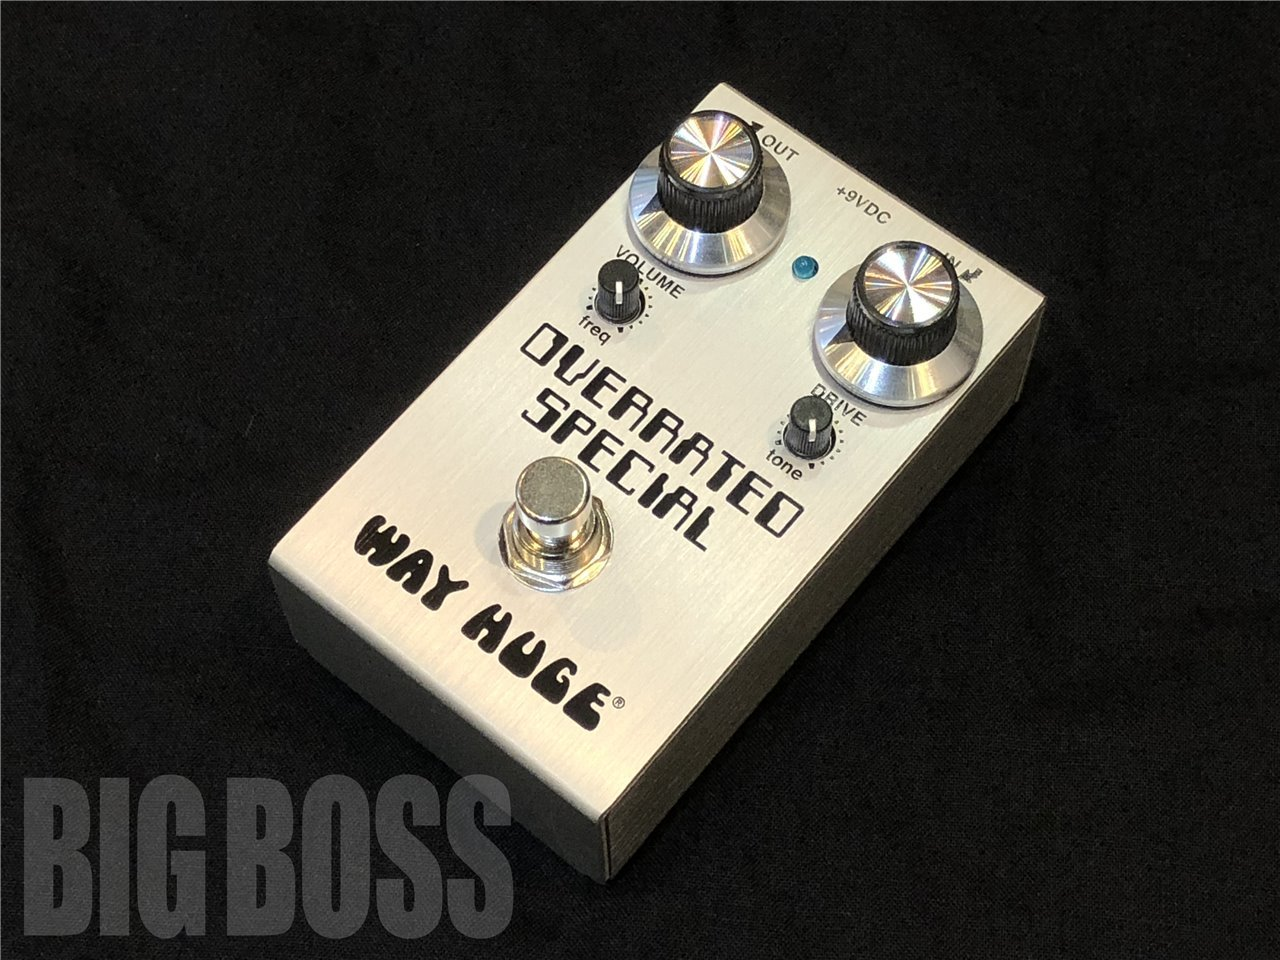 Way Huge WM28 SMALLS OVERRATED SPECIAL OVERDRIVE